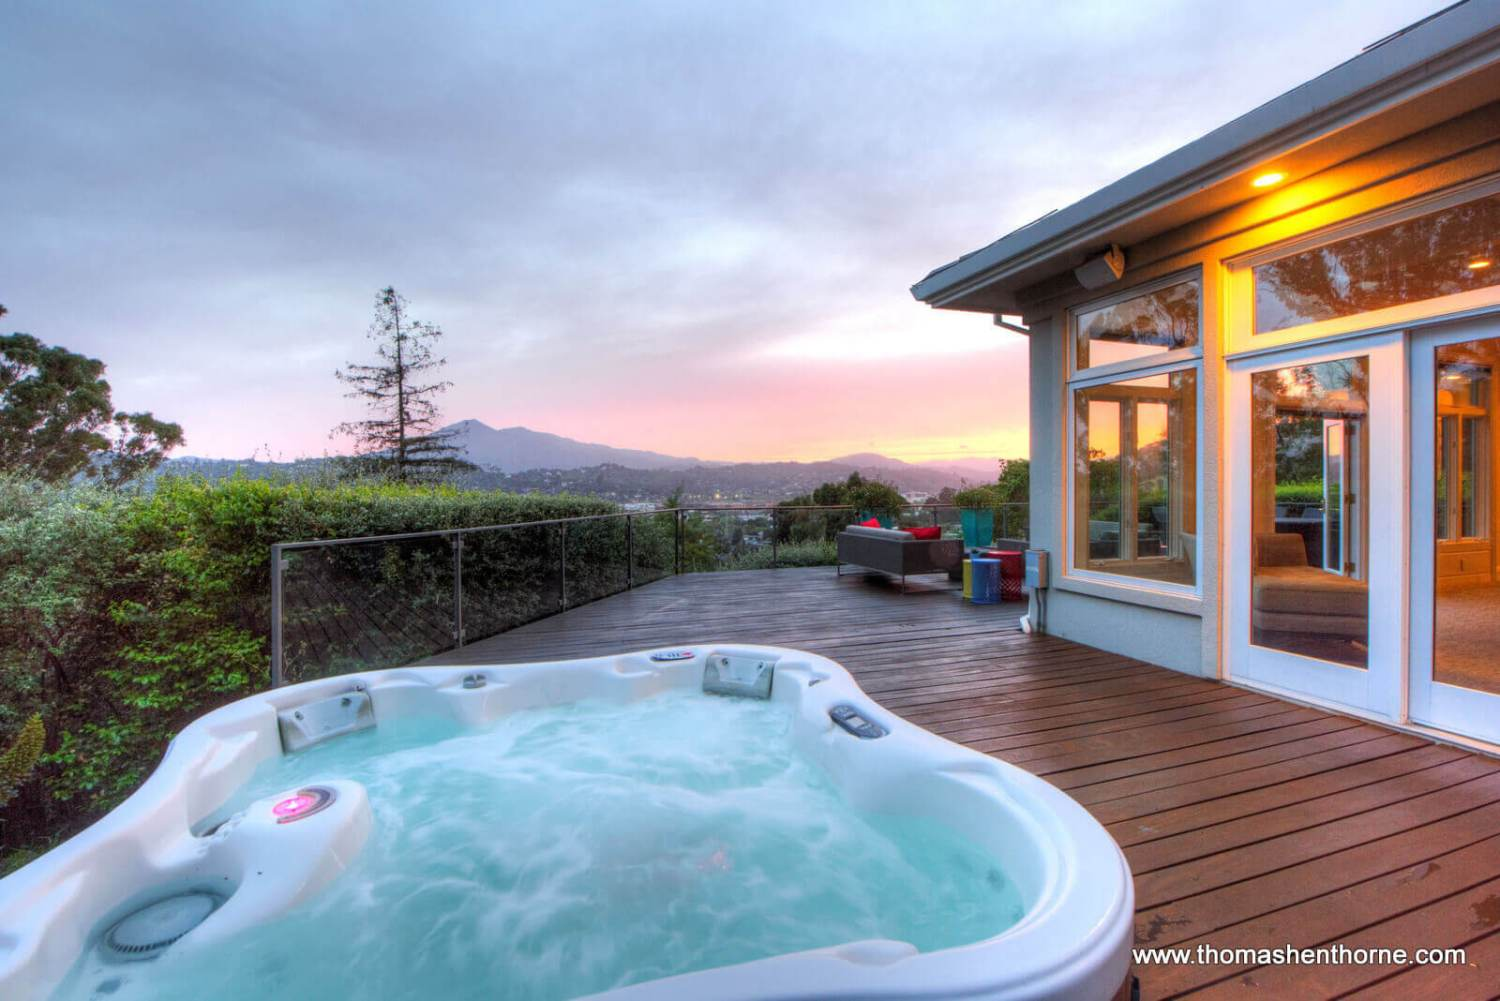 Hot tub with view of Mt. Tam at dusk